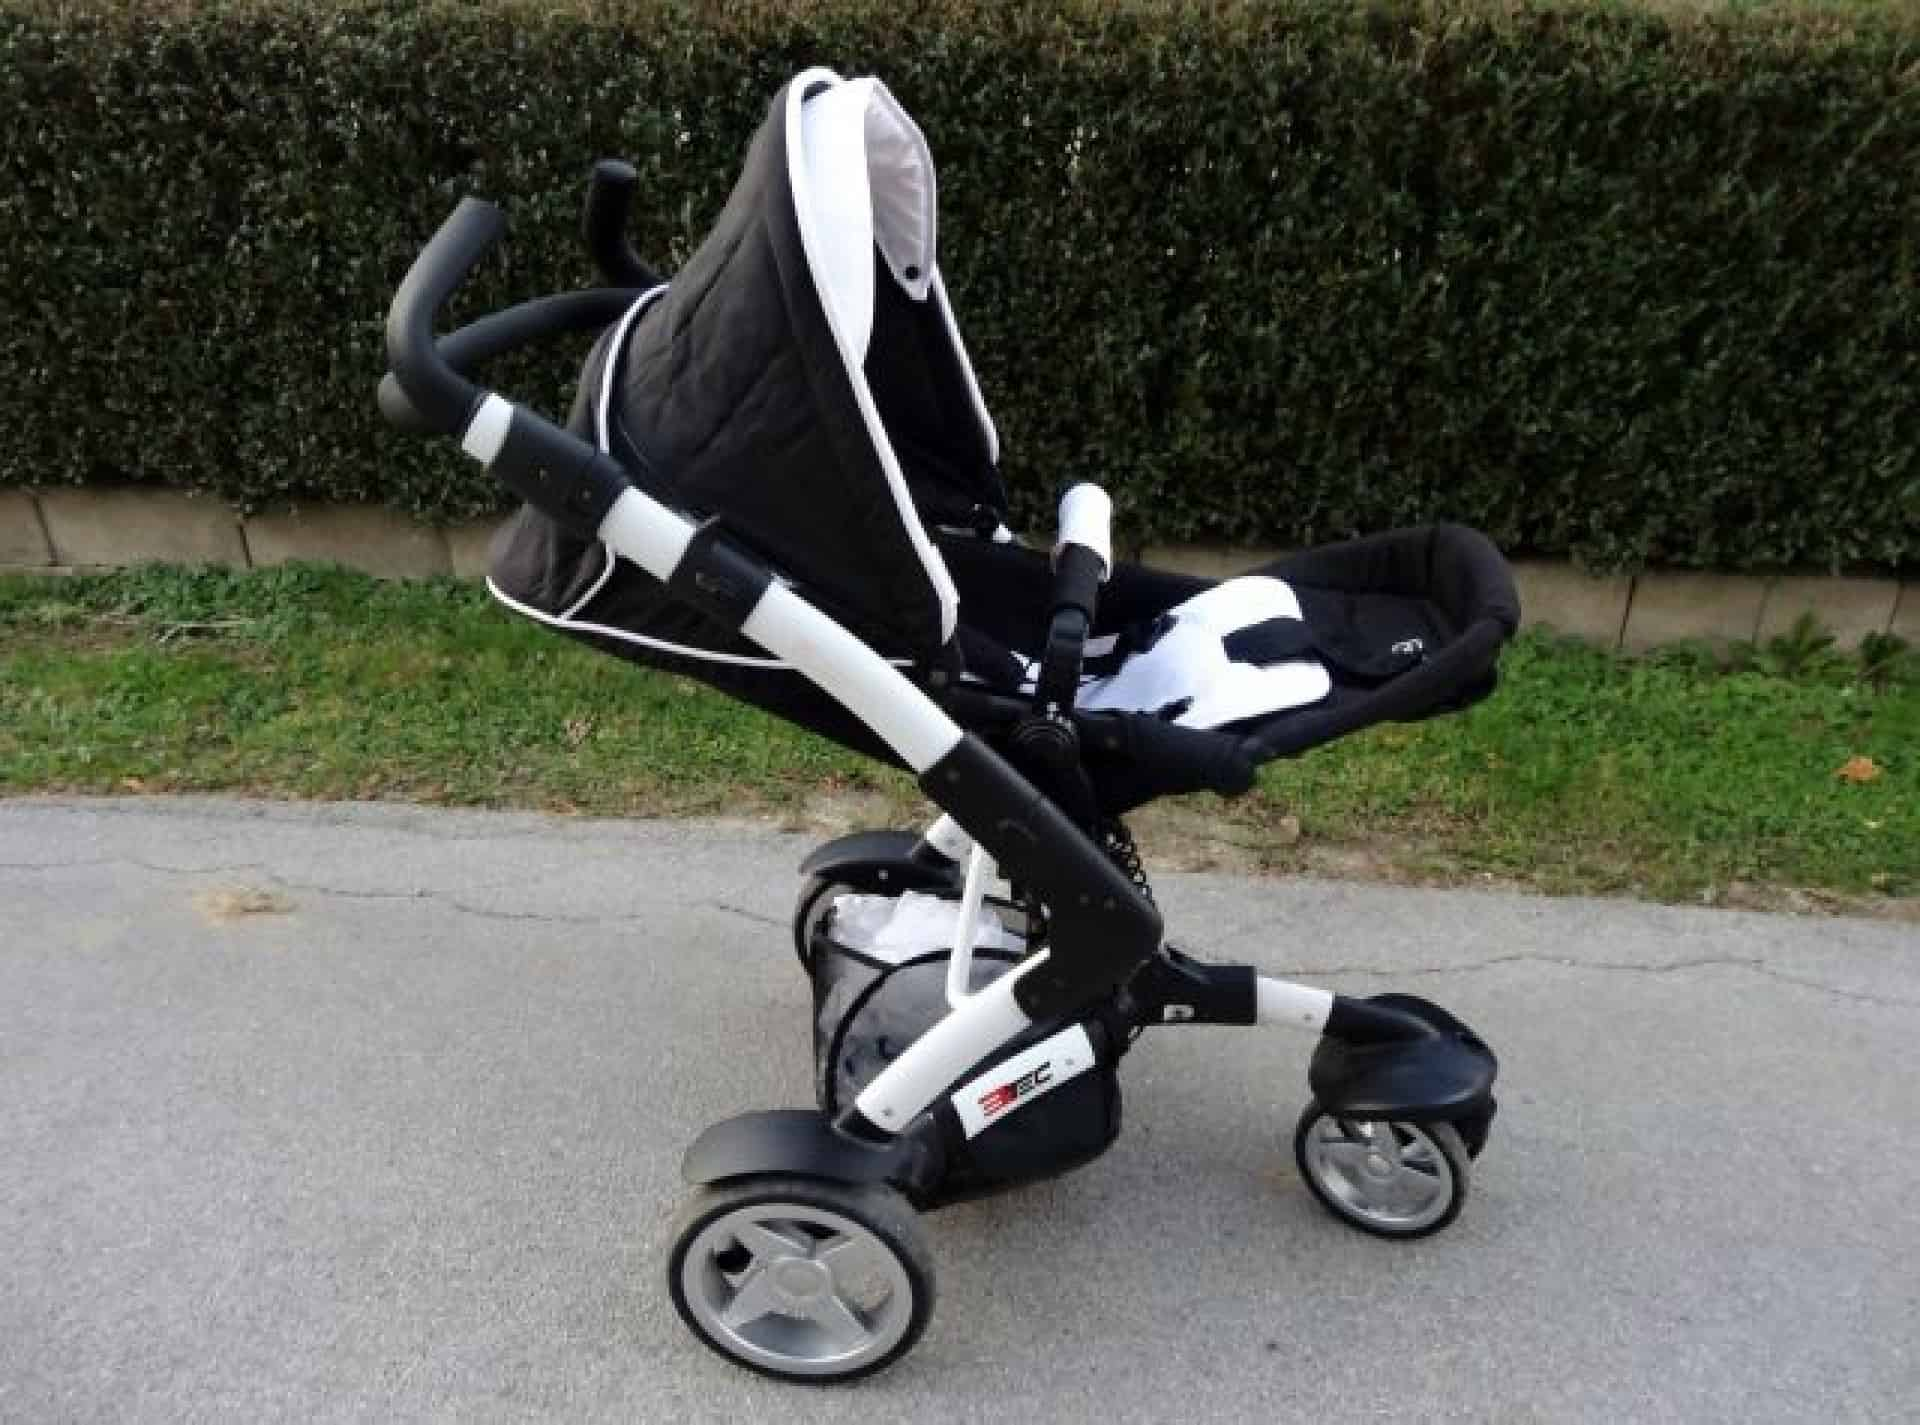 Cristopher Manuga's stroller availbale to rent on Bebalino.